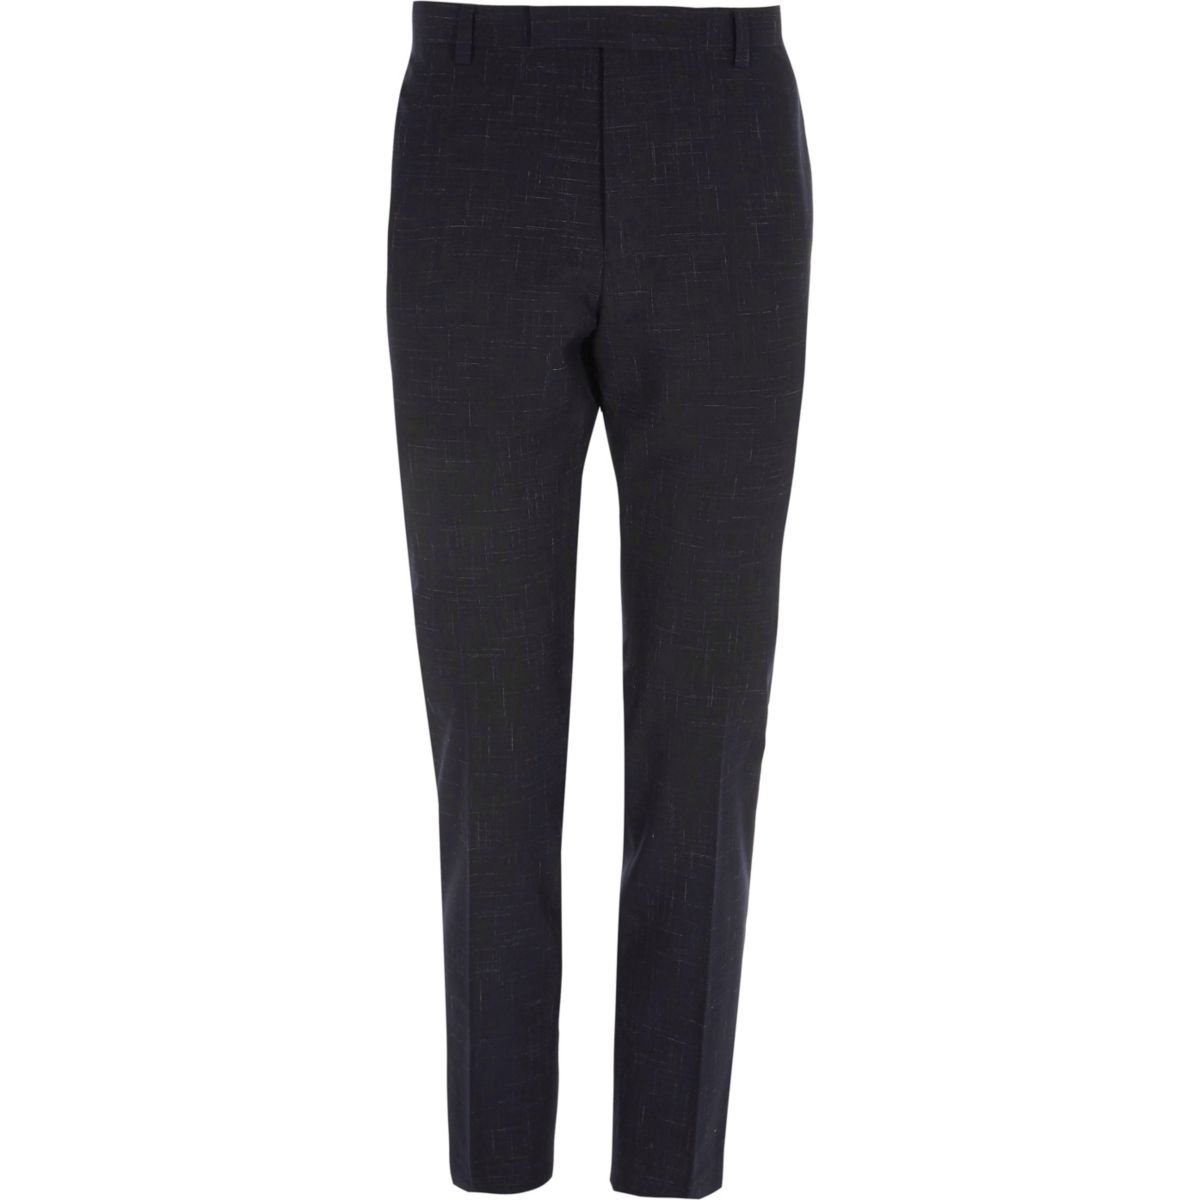 Navy skinny fit suit pants